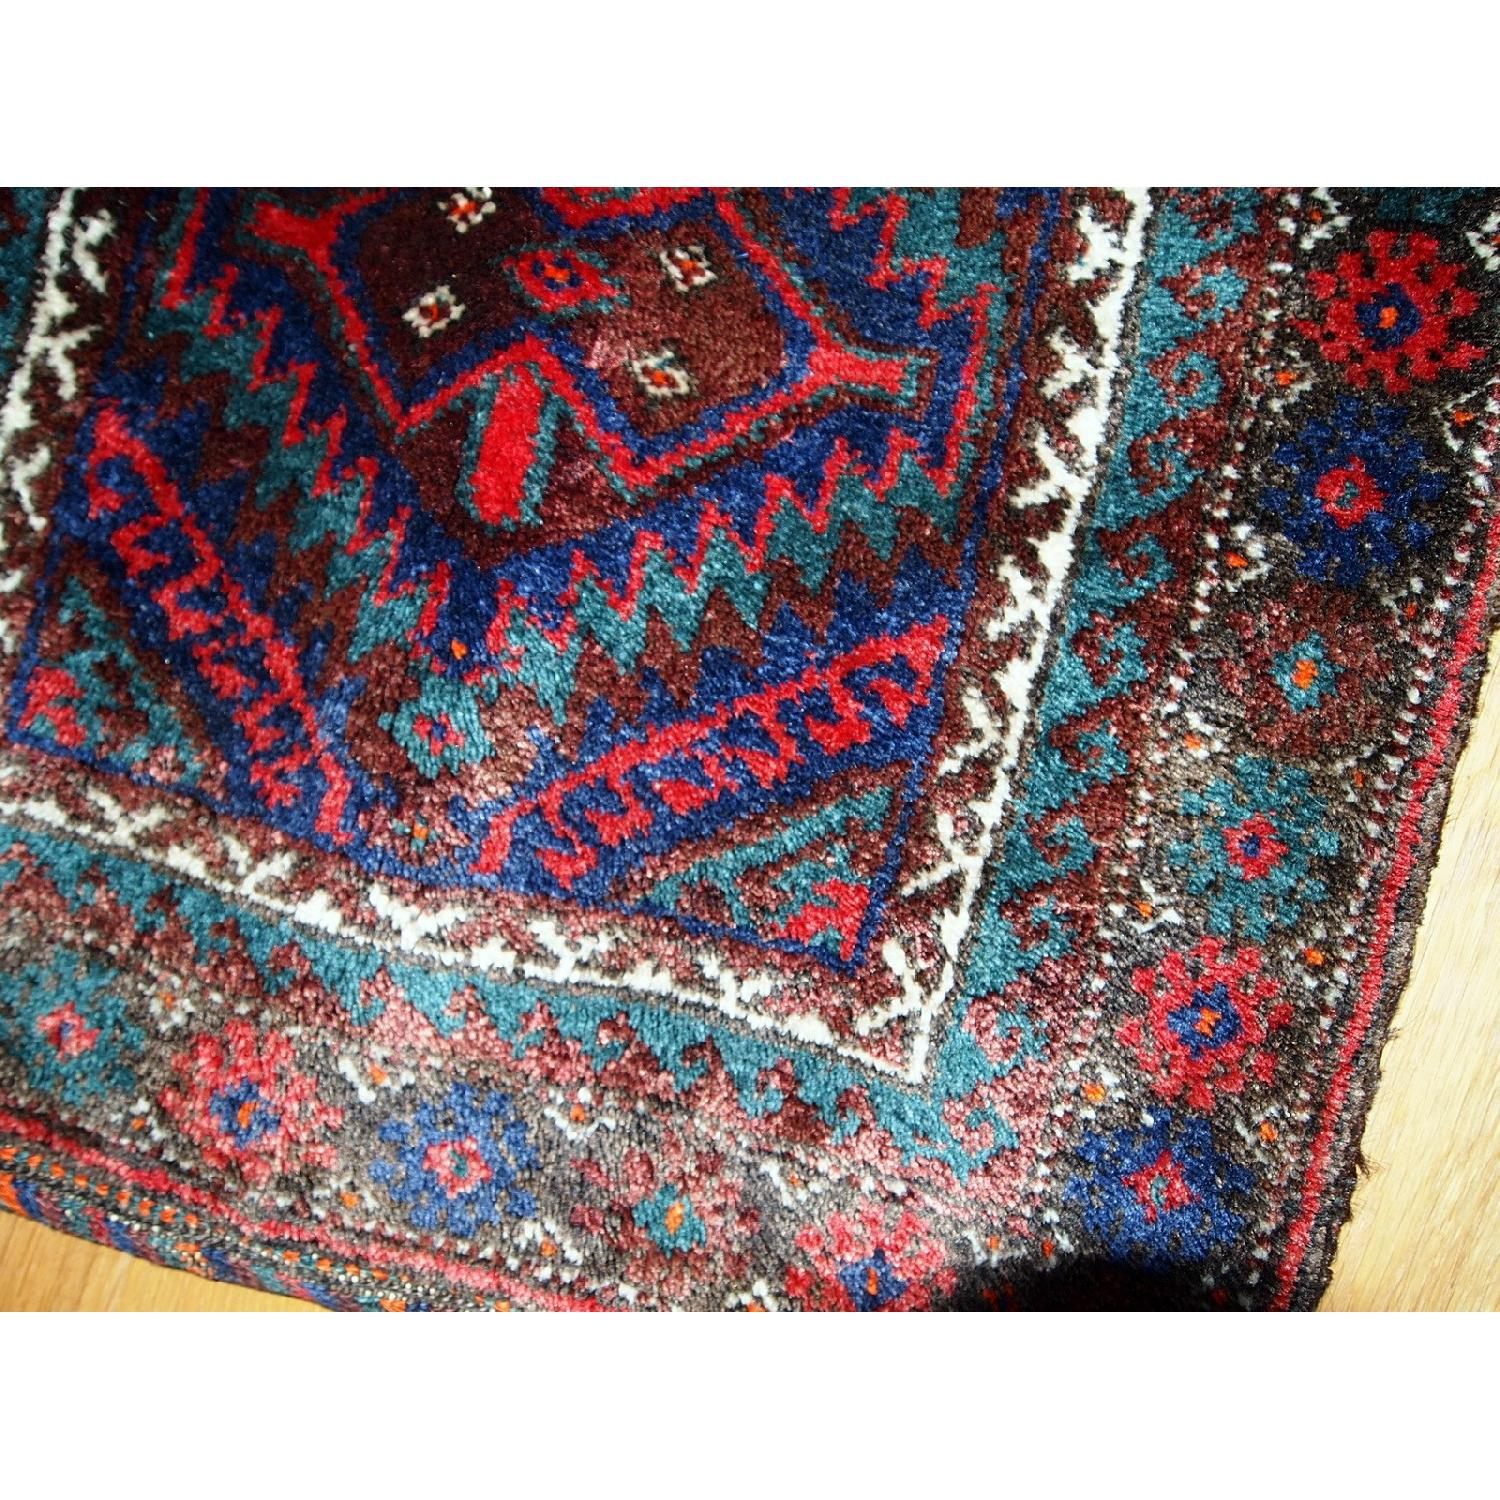 Antique Handmade Persian Kurdish Salt Bag Rug - image-8